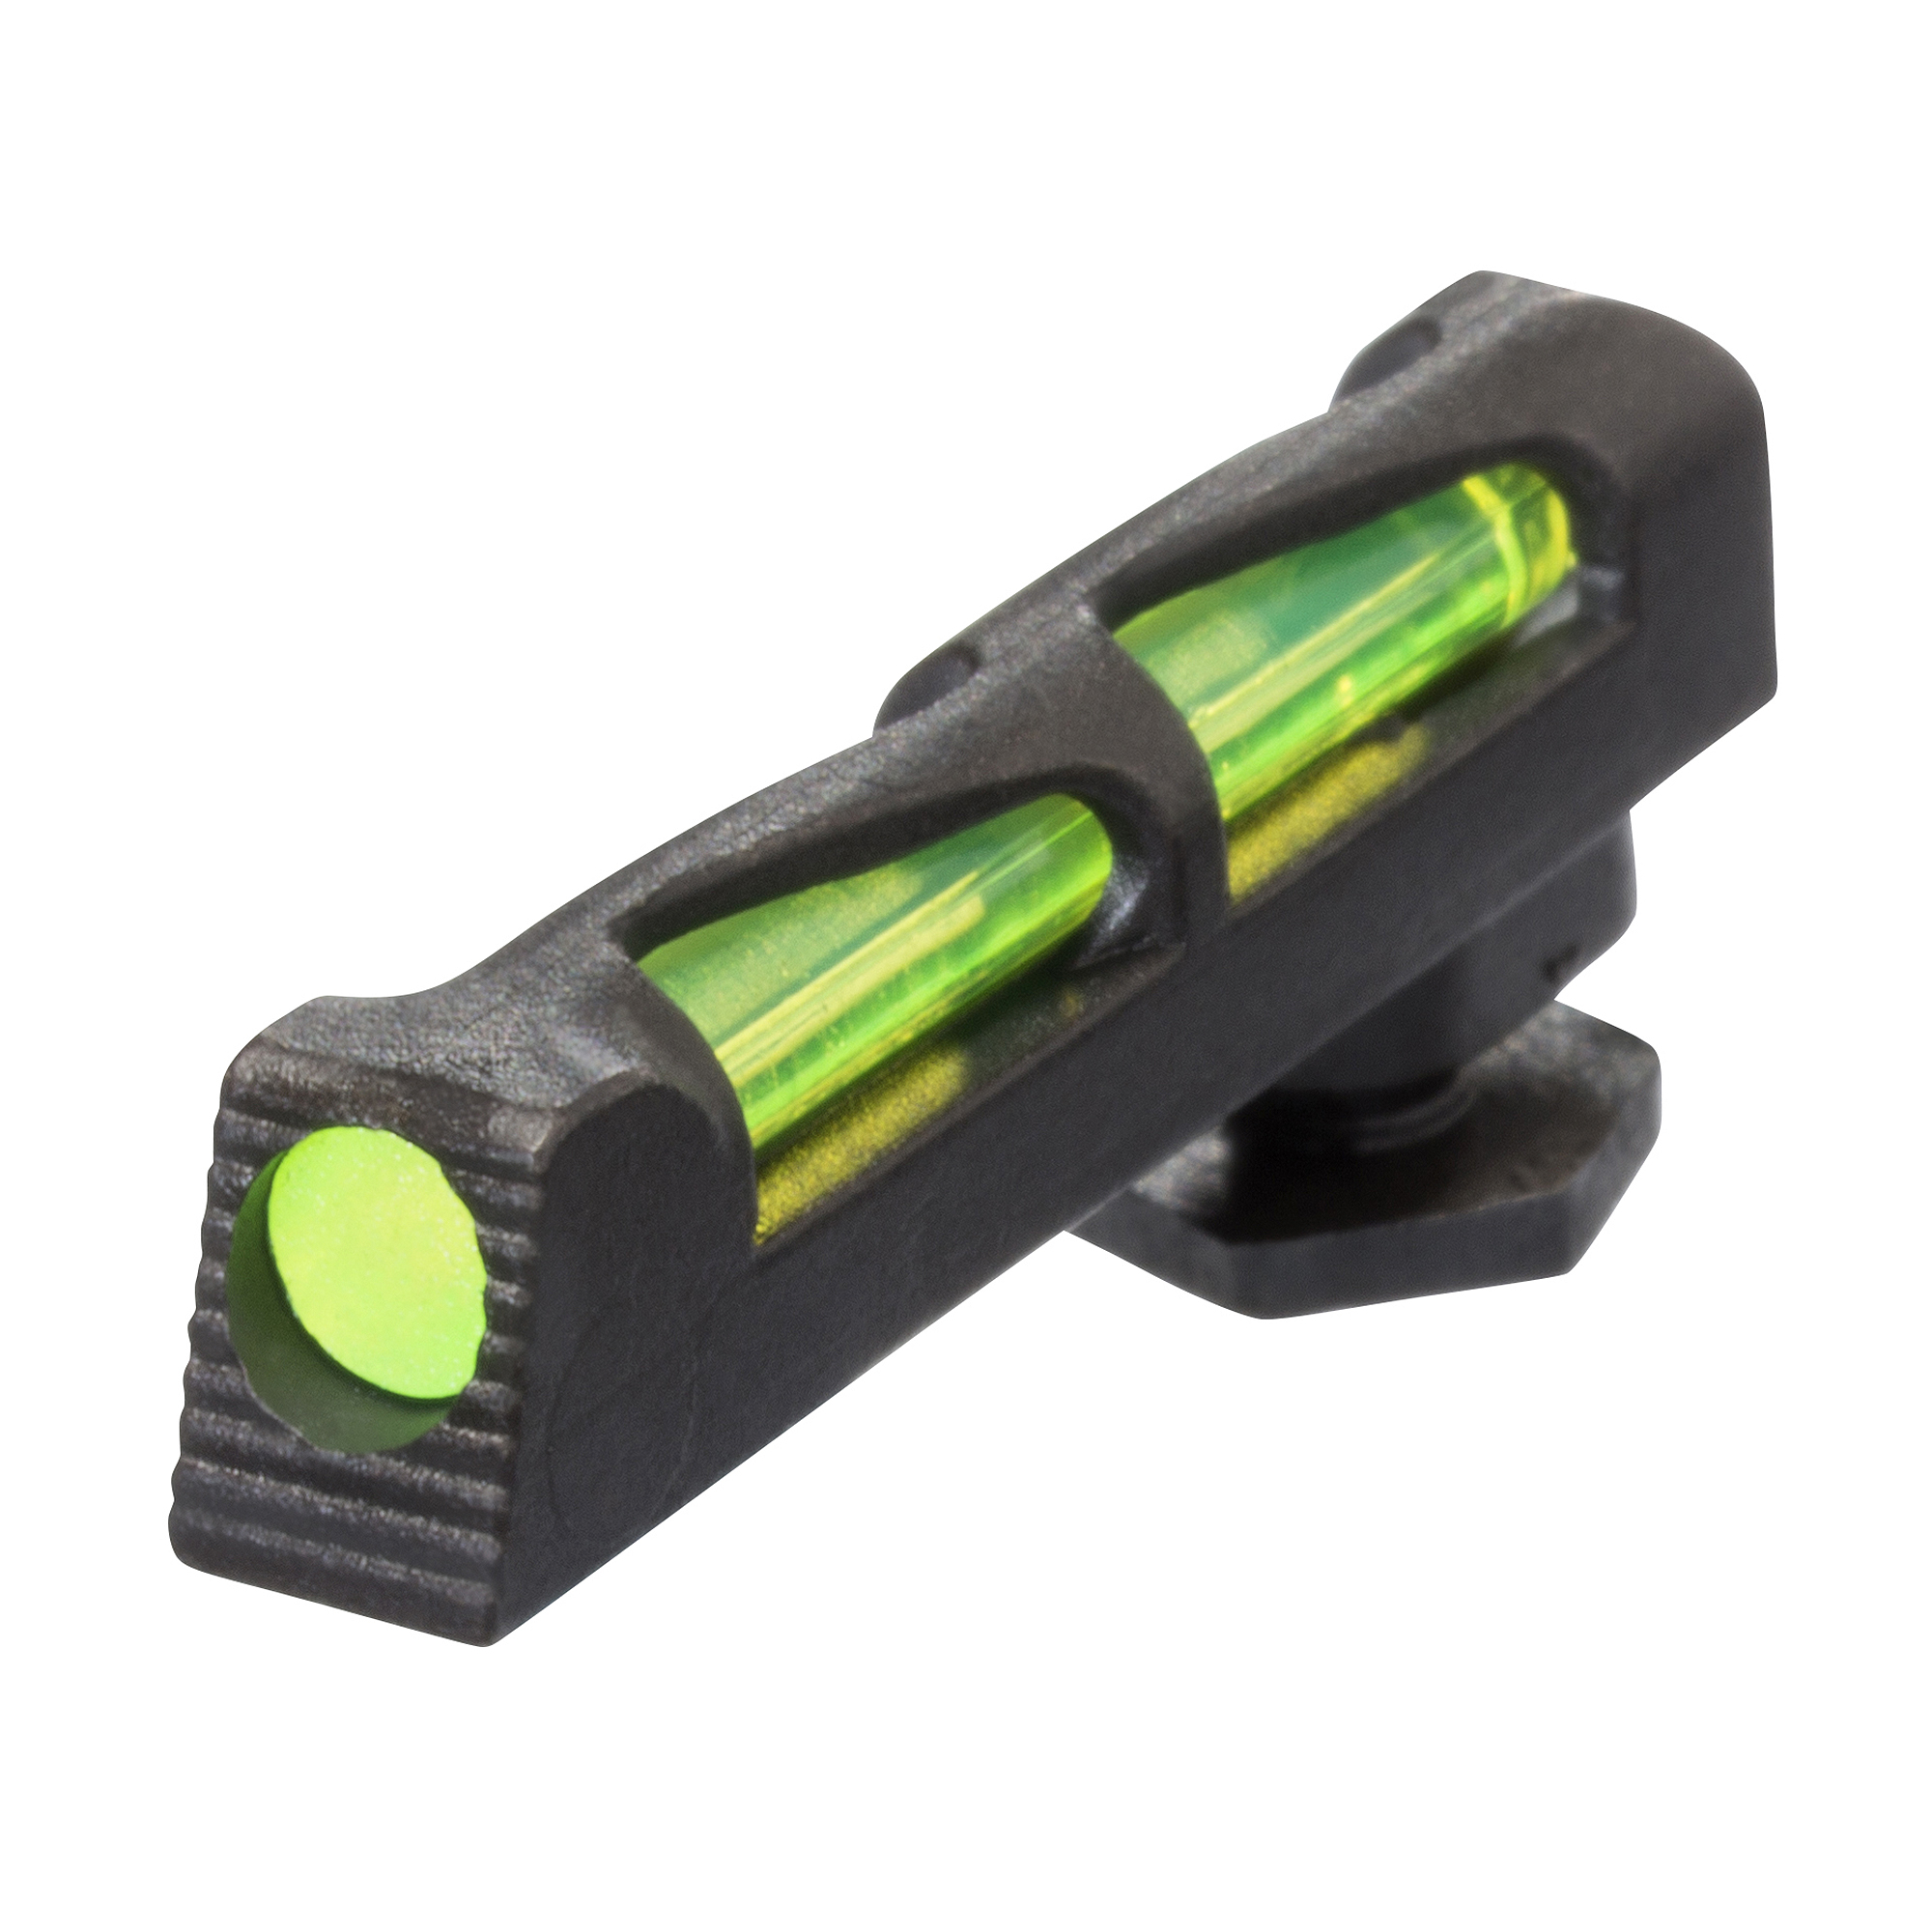 HiViz Glock Front Sight Fiber Optic Interchangeable Litepipes Red, Green, & White